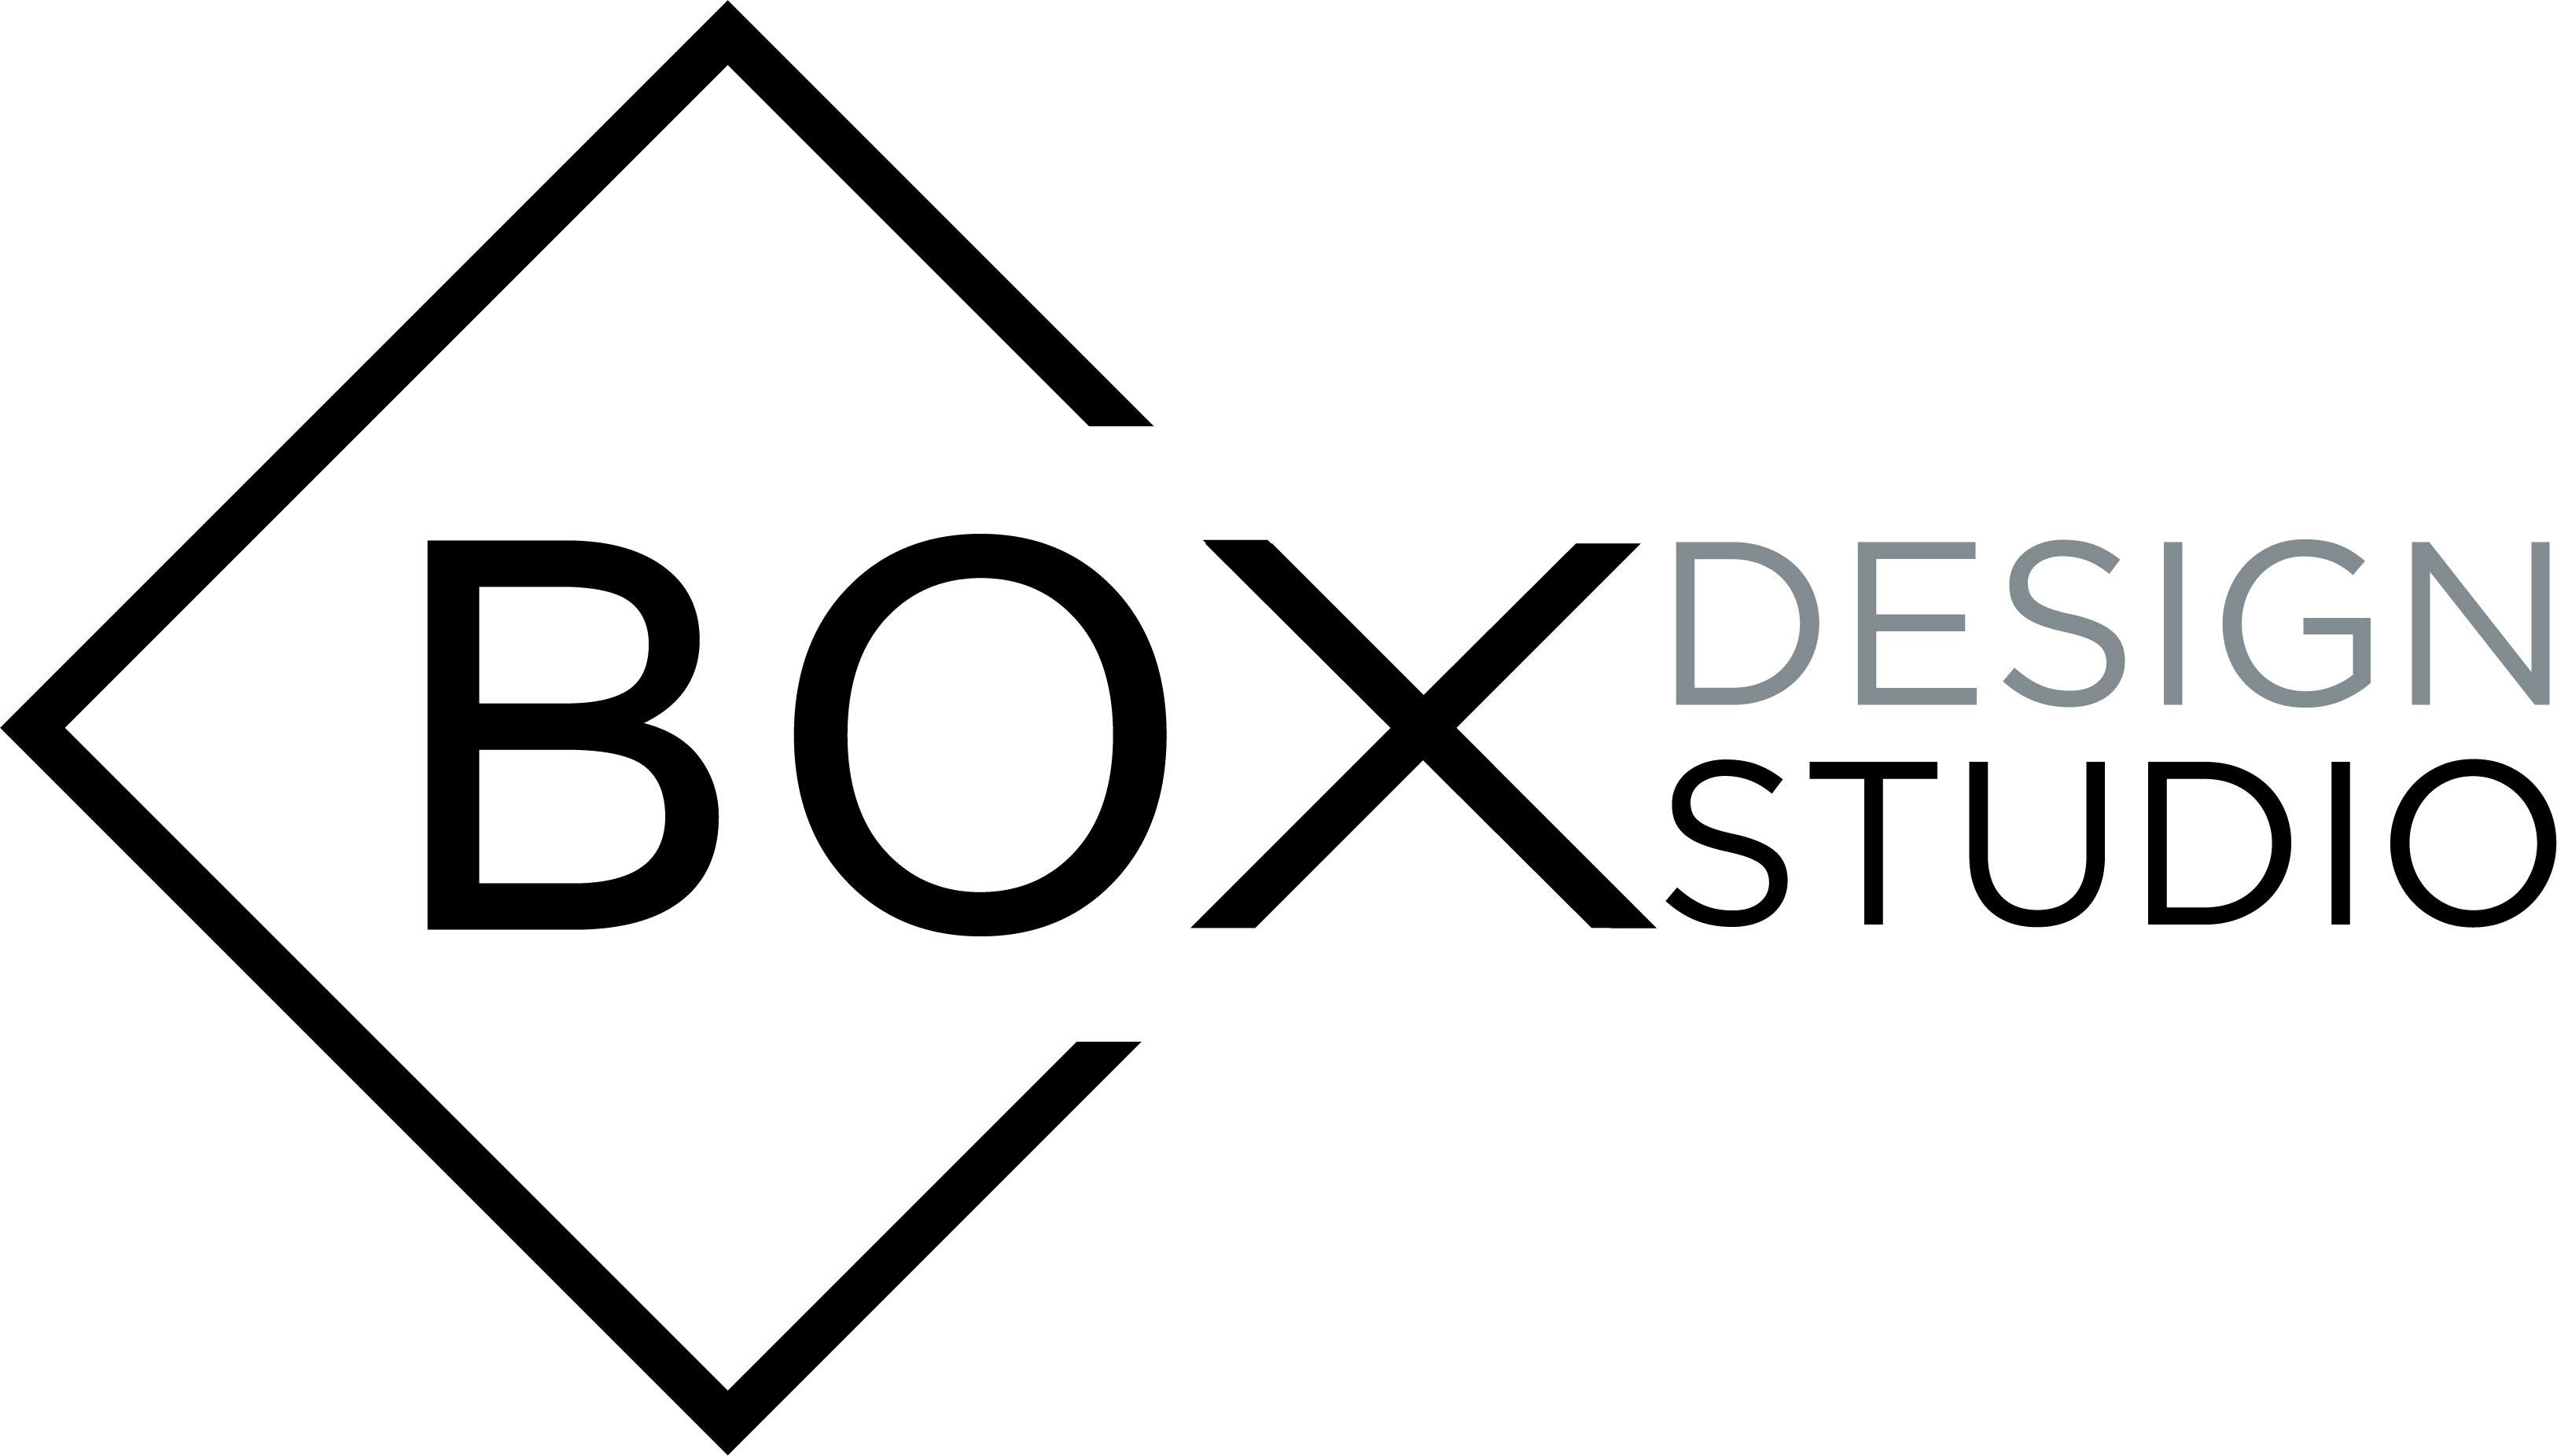 Box Design Studio